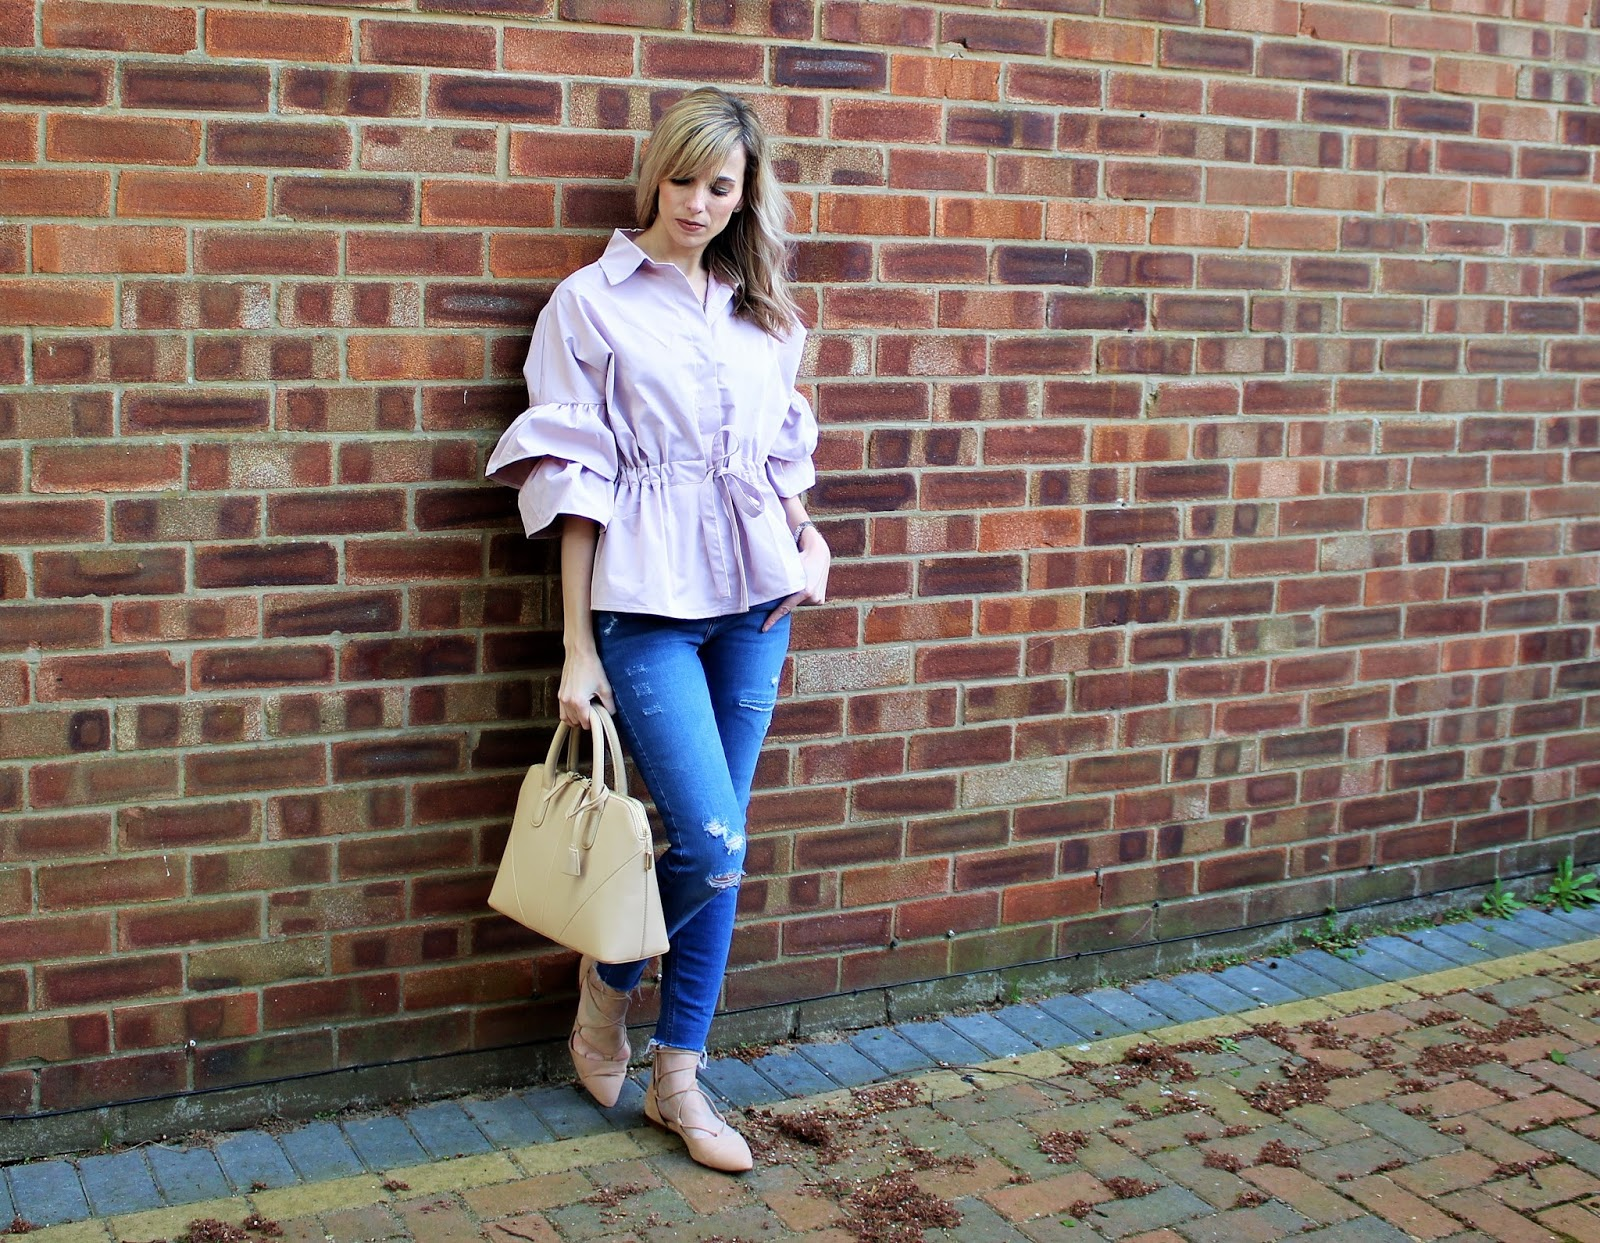 OOTD featuring a ruffled Shein blouse in blush pink - 5